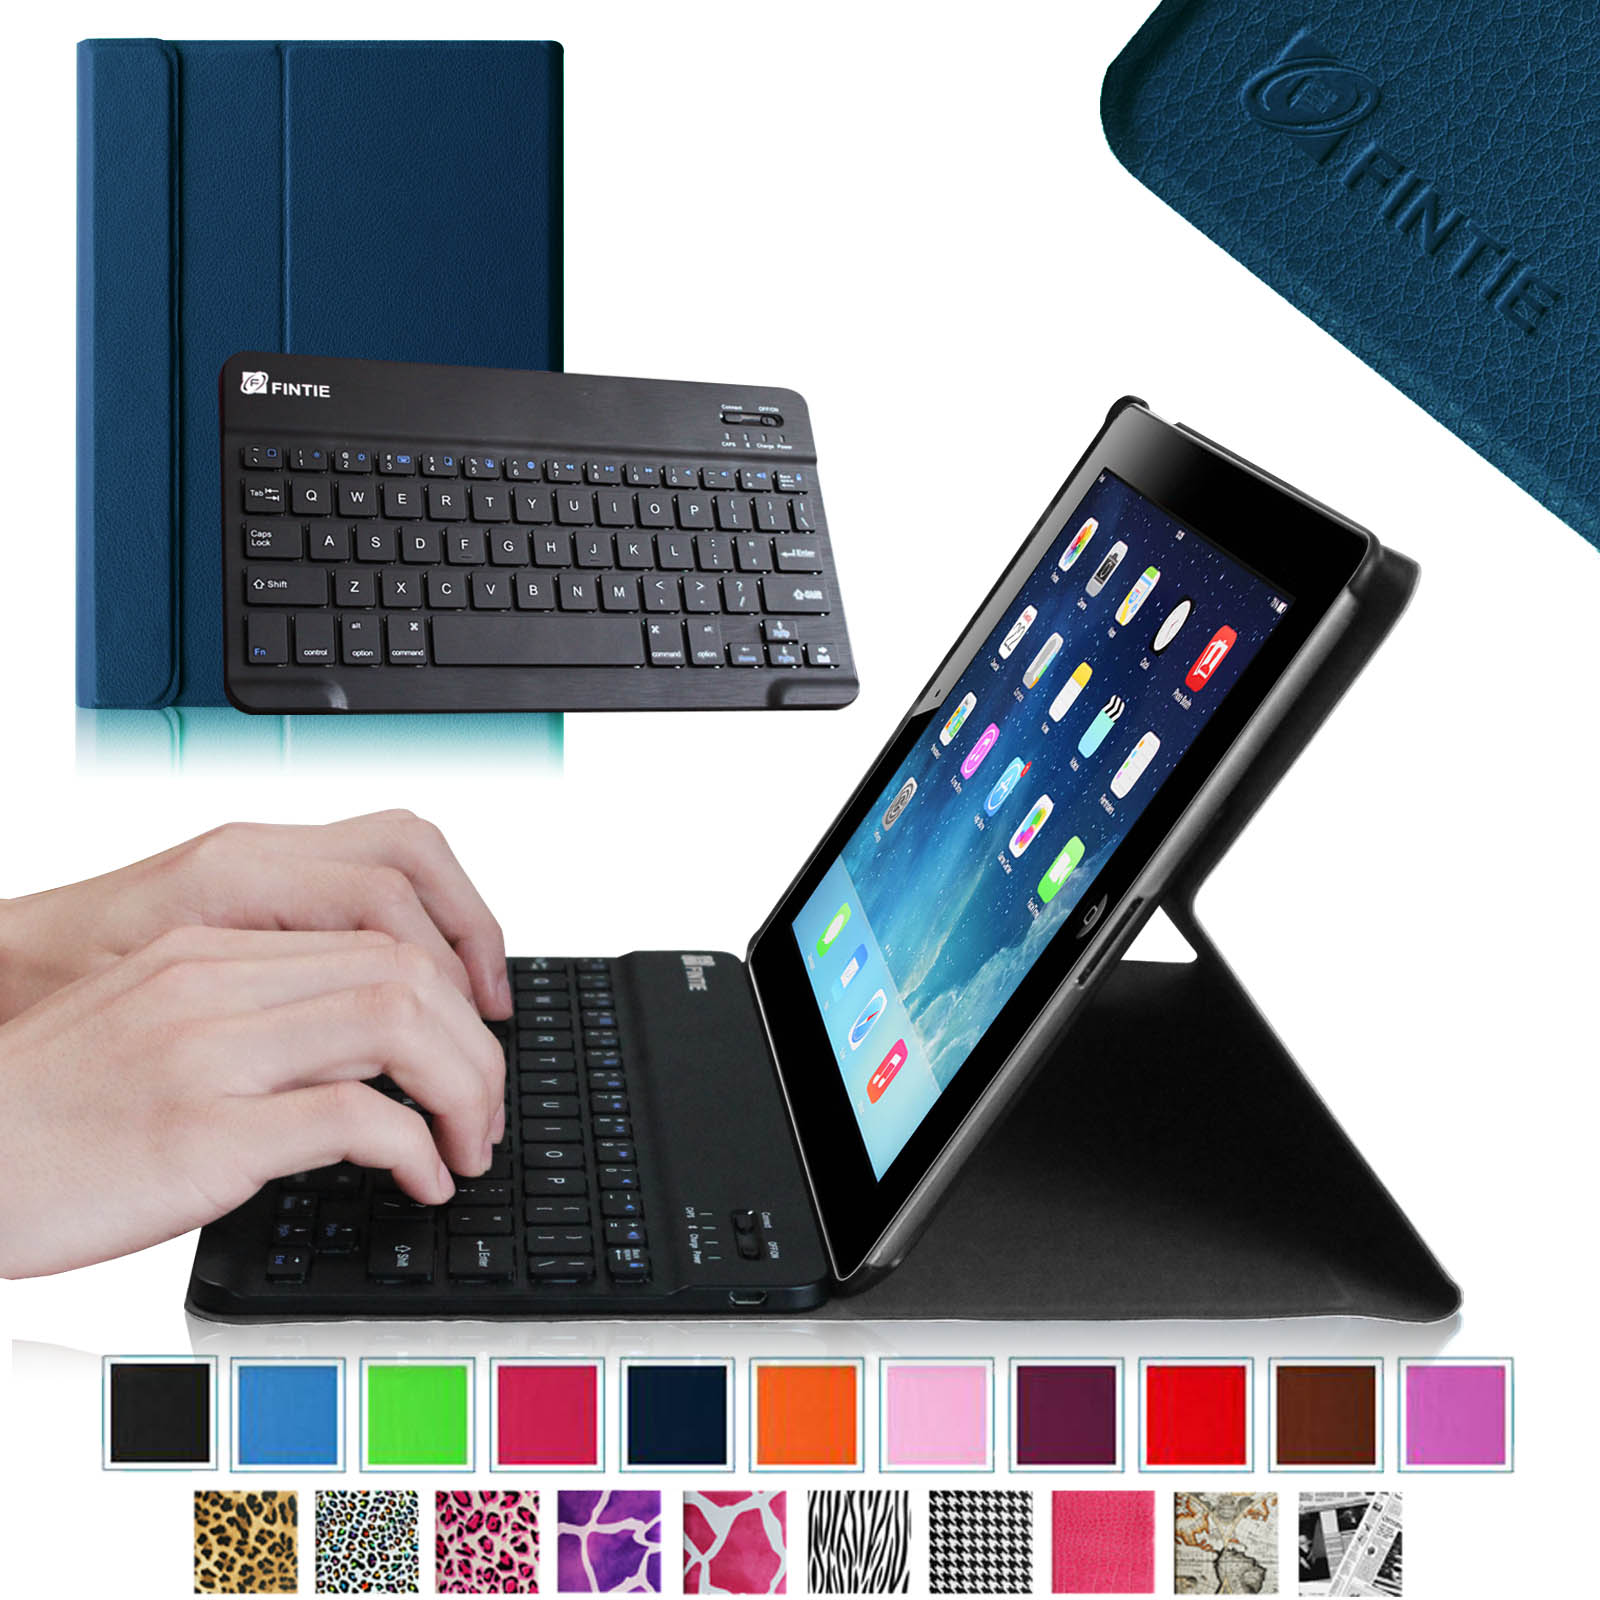 For Apple iPad 4, iPad 3 & iPad 2 Keyboard Case - Fintie SlimShell Stand Cover with Detachable Bluetooth Keyboard, Navy